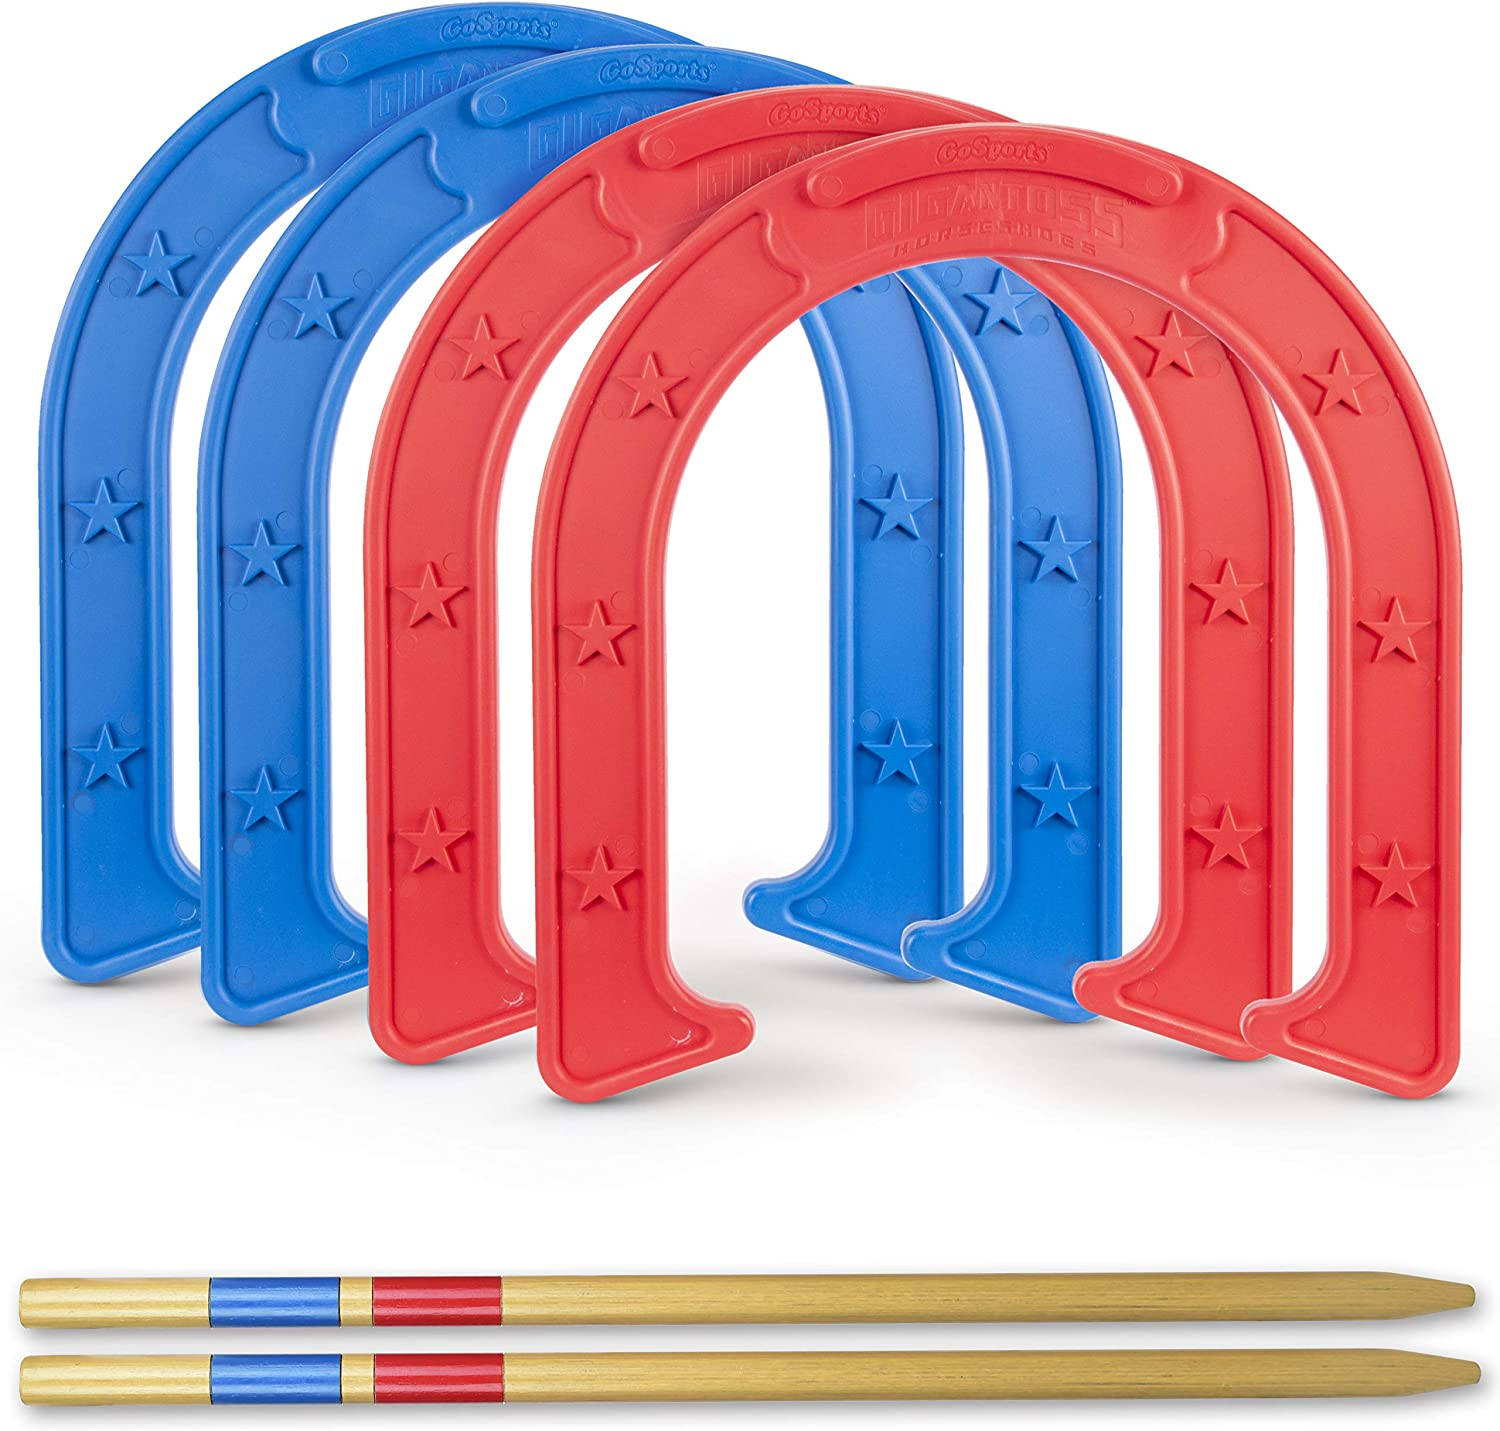 GoSports Giant Horseshoes Set   Made from Durable Plastic with Wooden Stakes